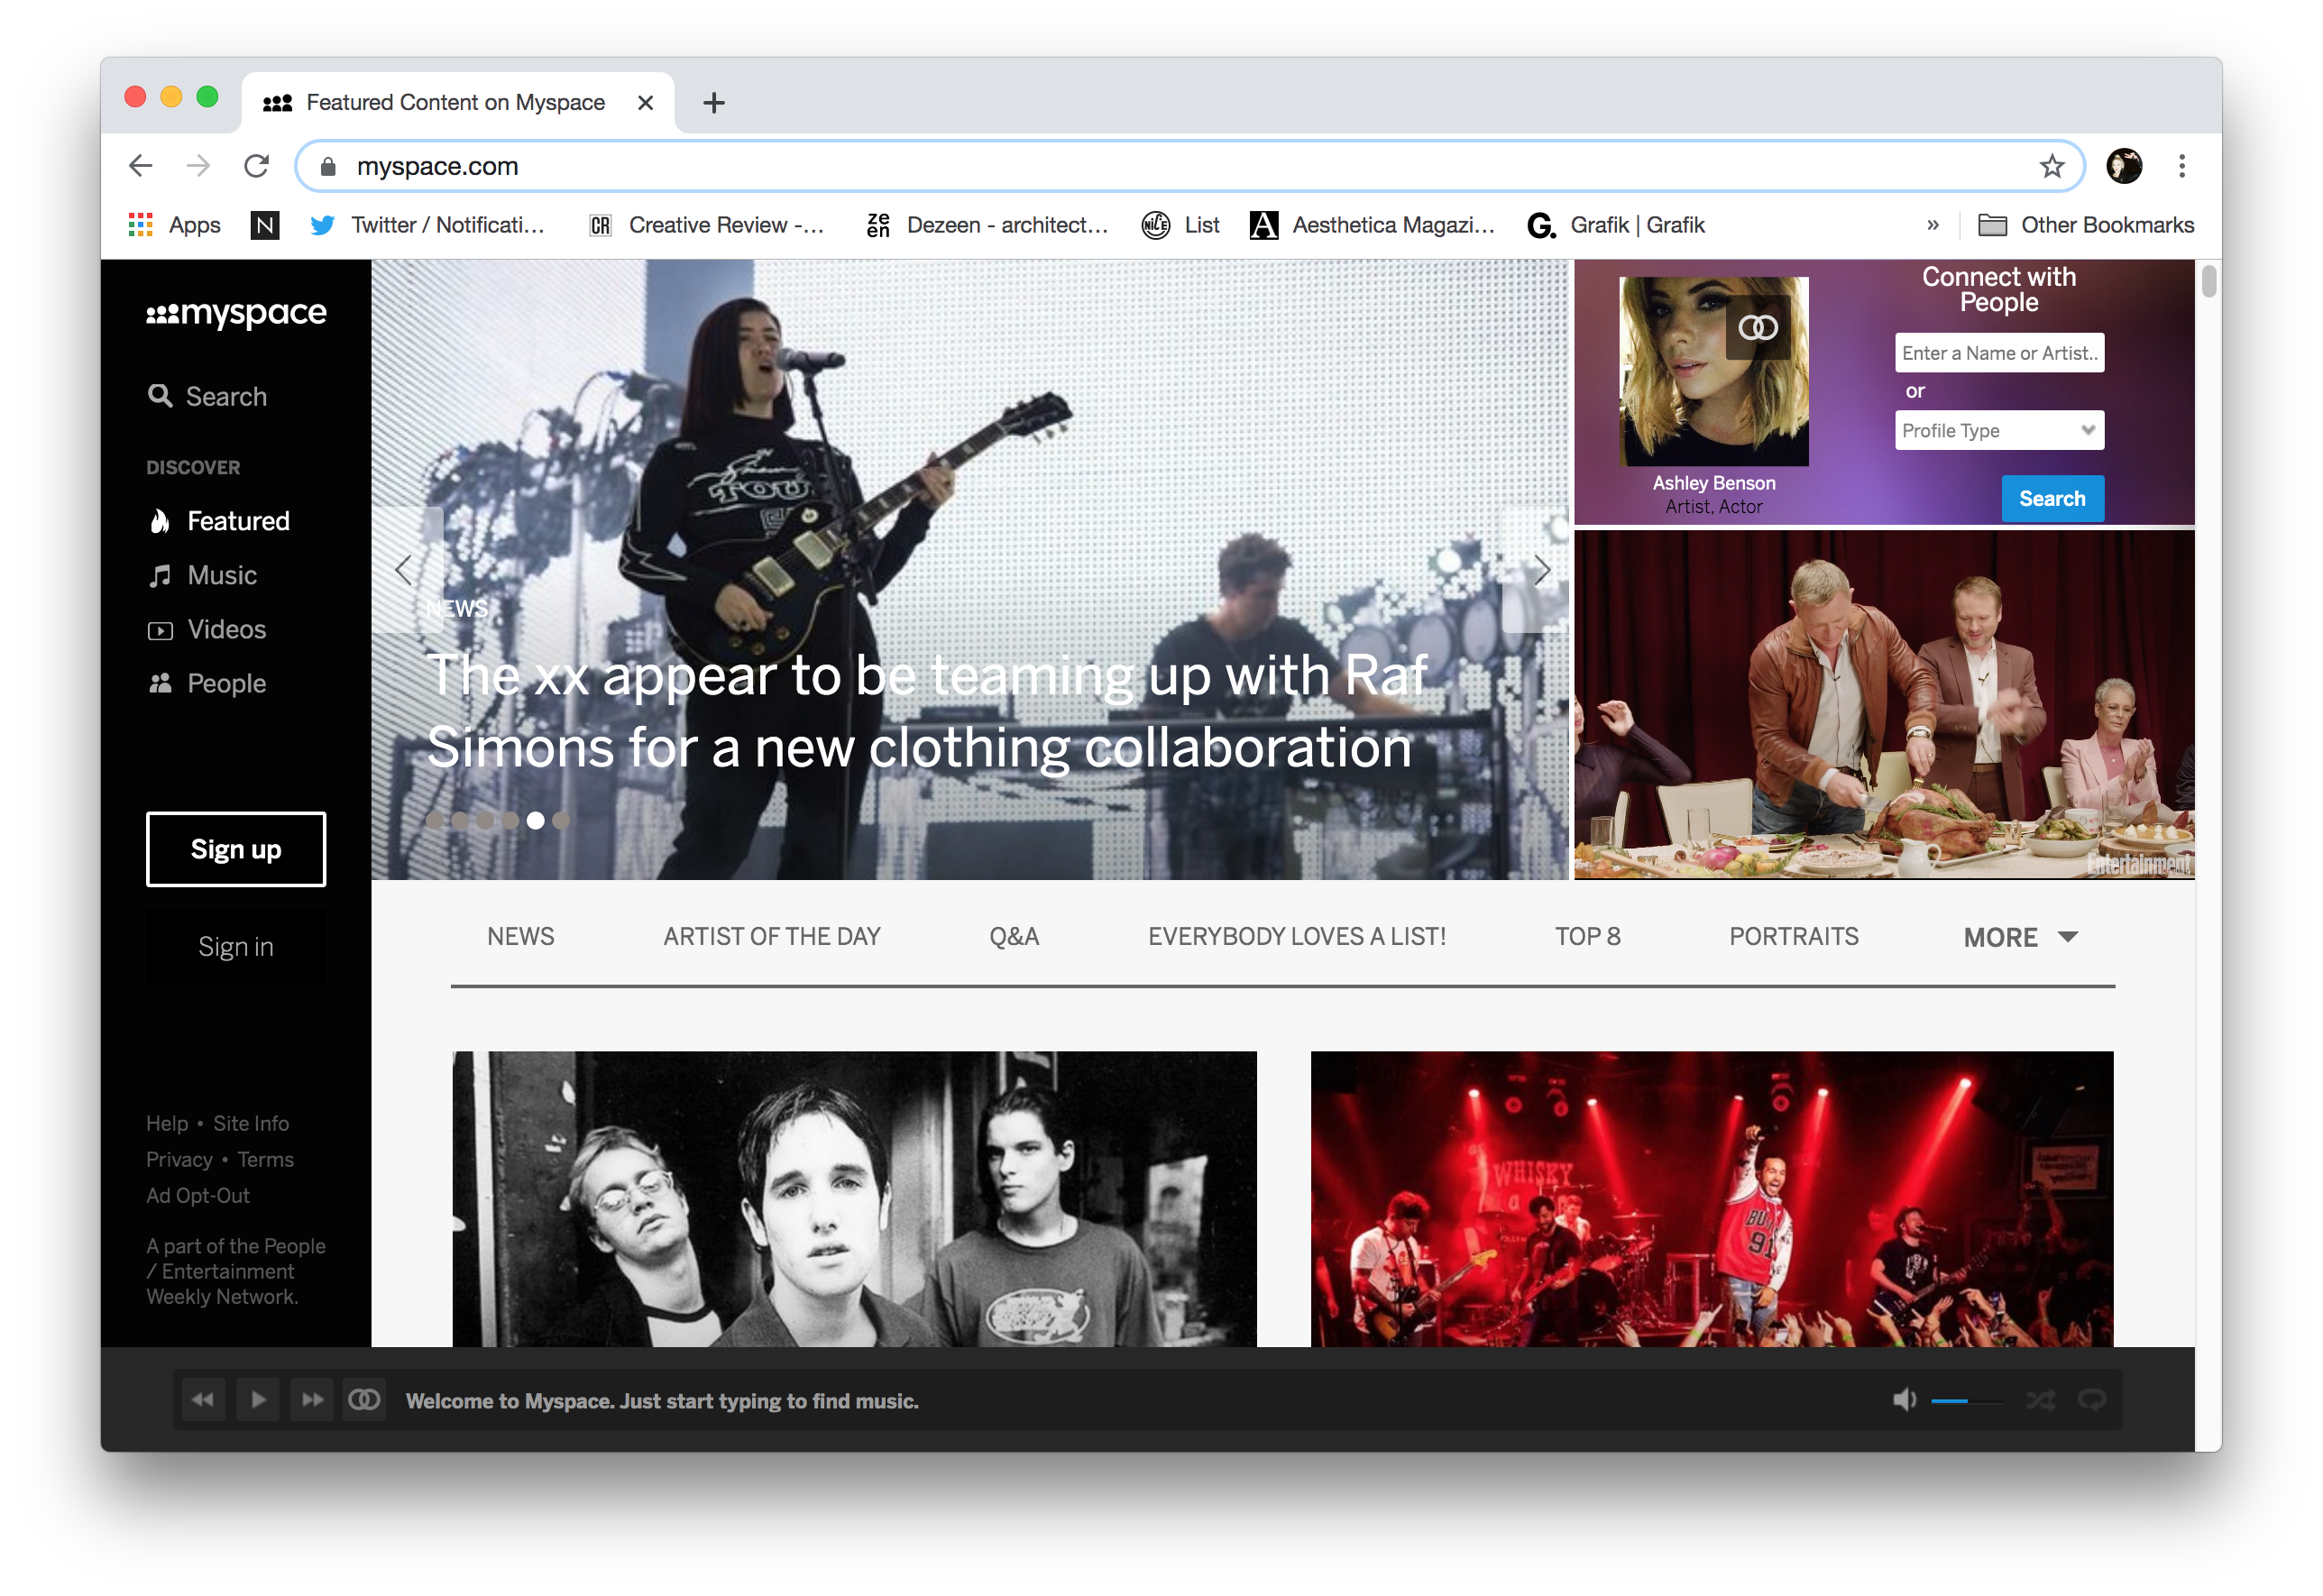 The Myspace homepage, November 2019